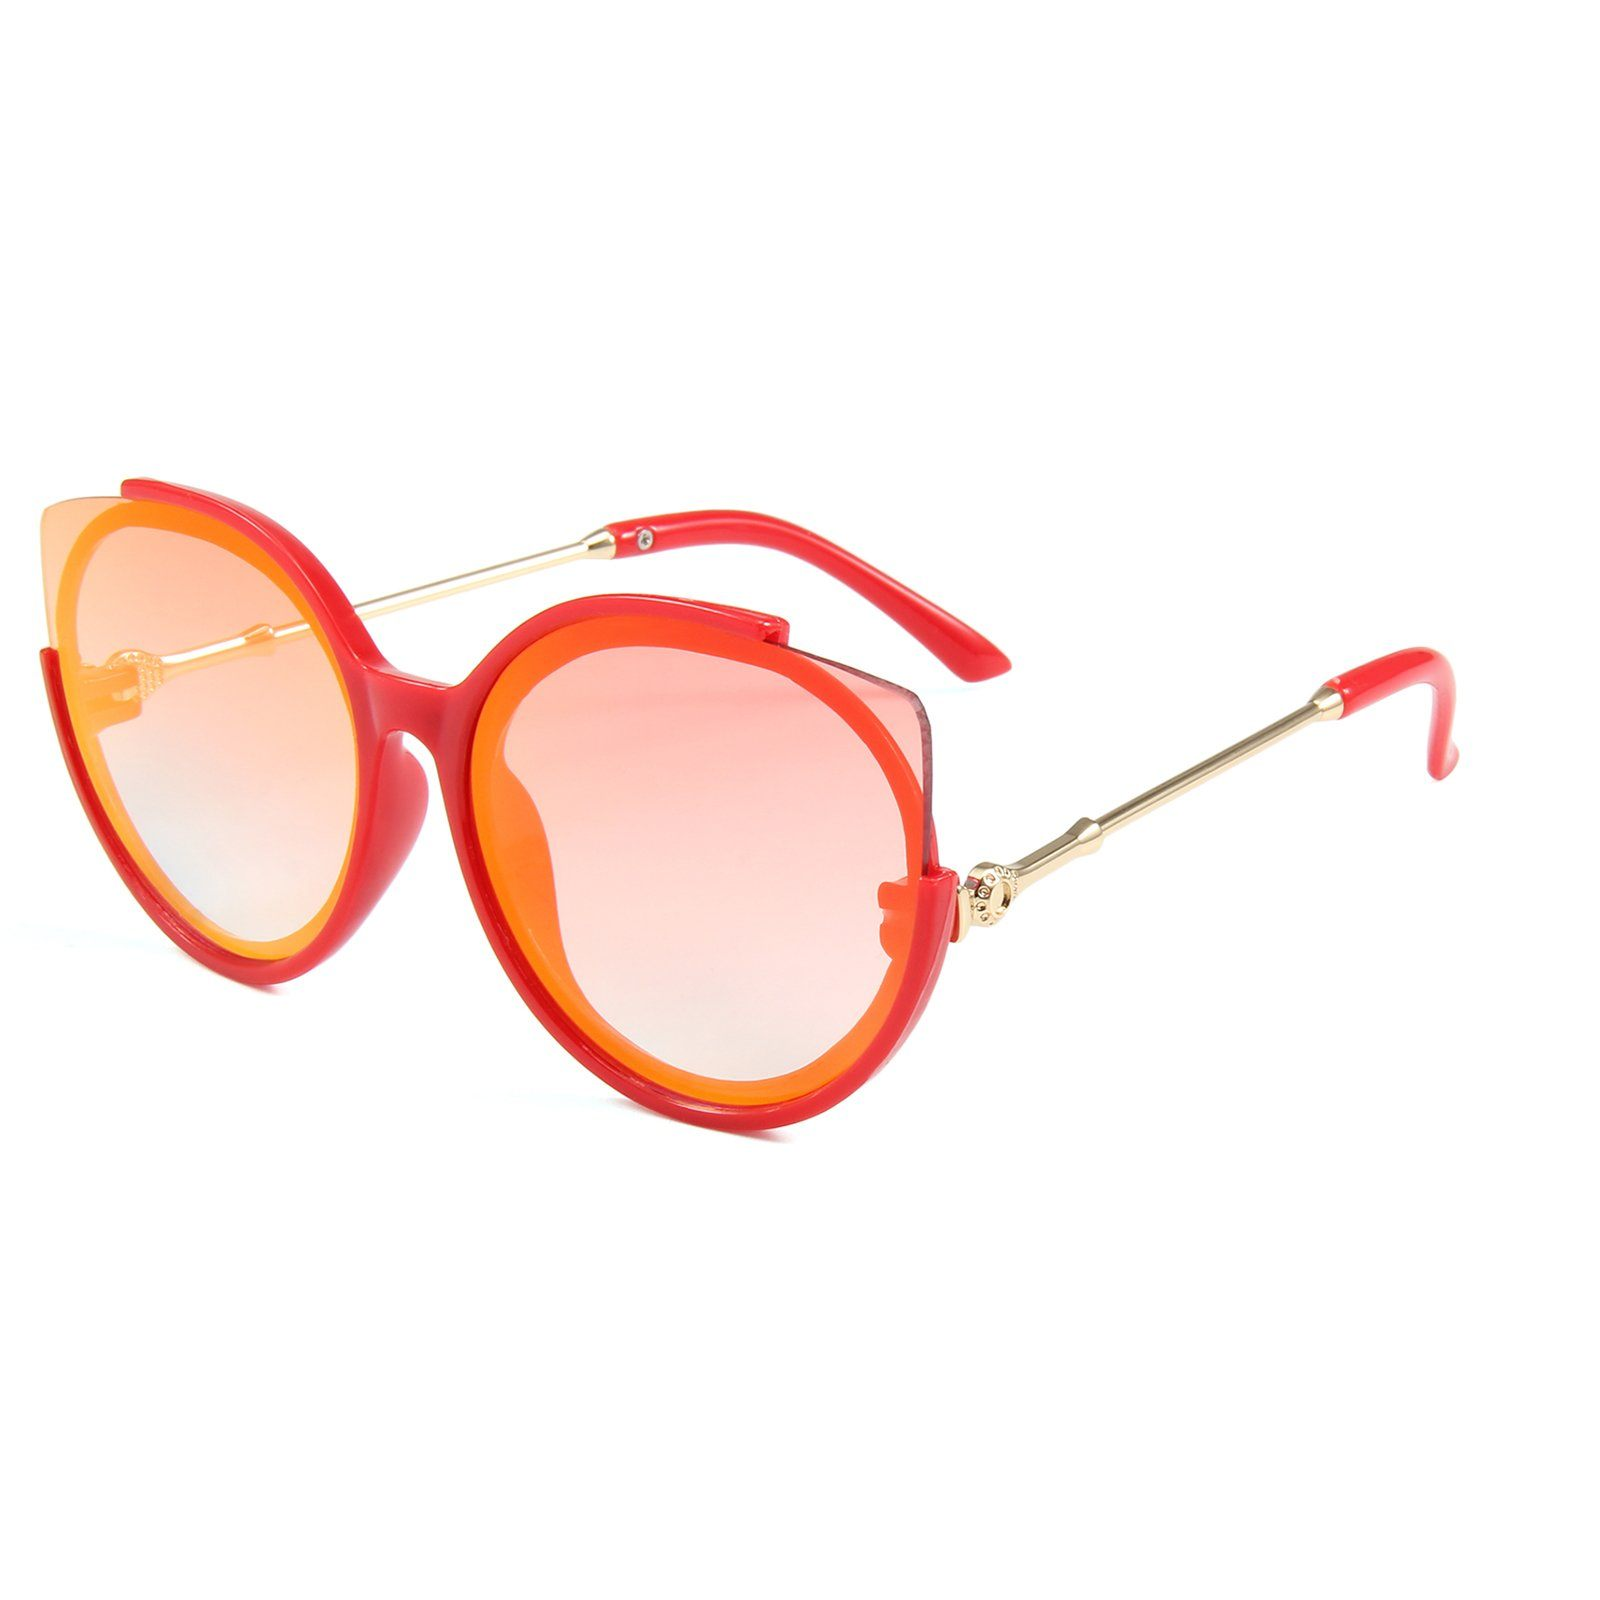 Kitty Sunglasses (Orange)